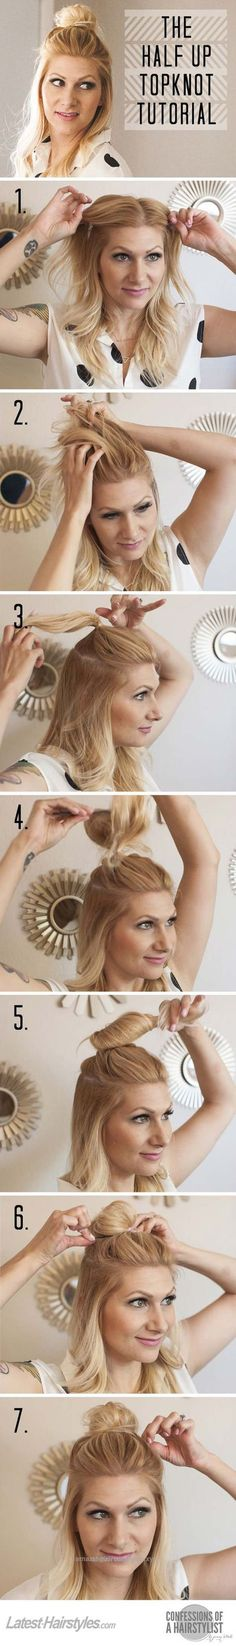 Unbelievable Excellent Cool and Easy DIY Hairstyles – The Half Up Top Knot – Quick and Easy Ideas for Back to School Styles for Medium, Short and Long Hair – Fun Tips and Best Step by Step ..  The p ..